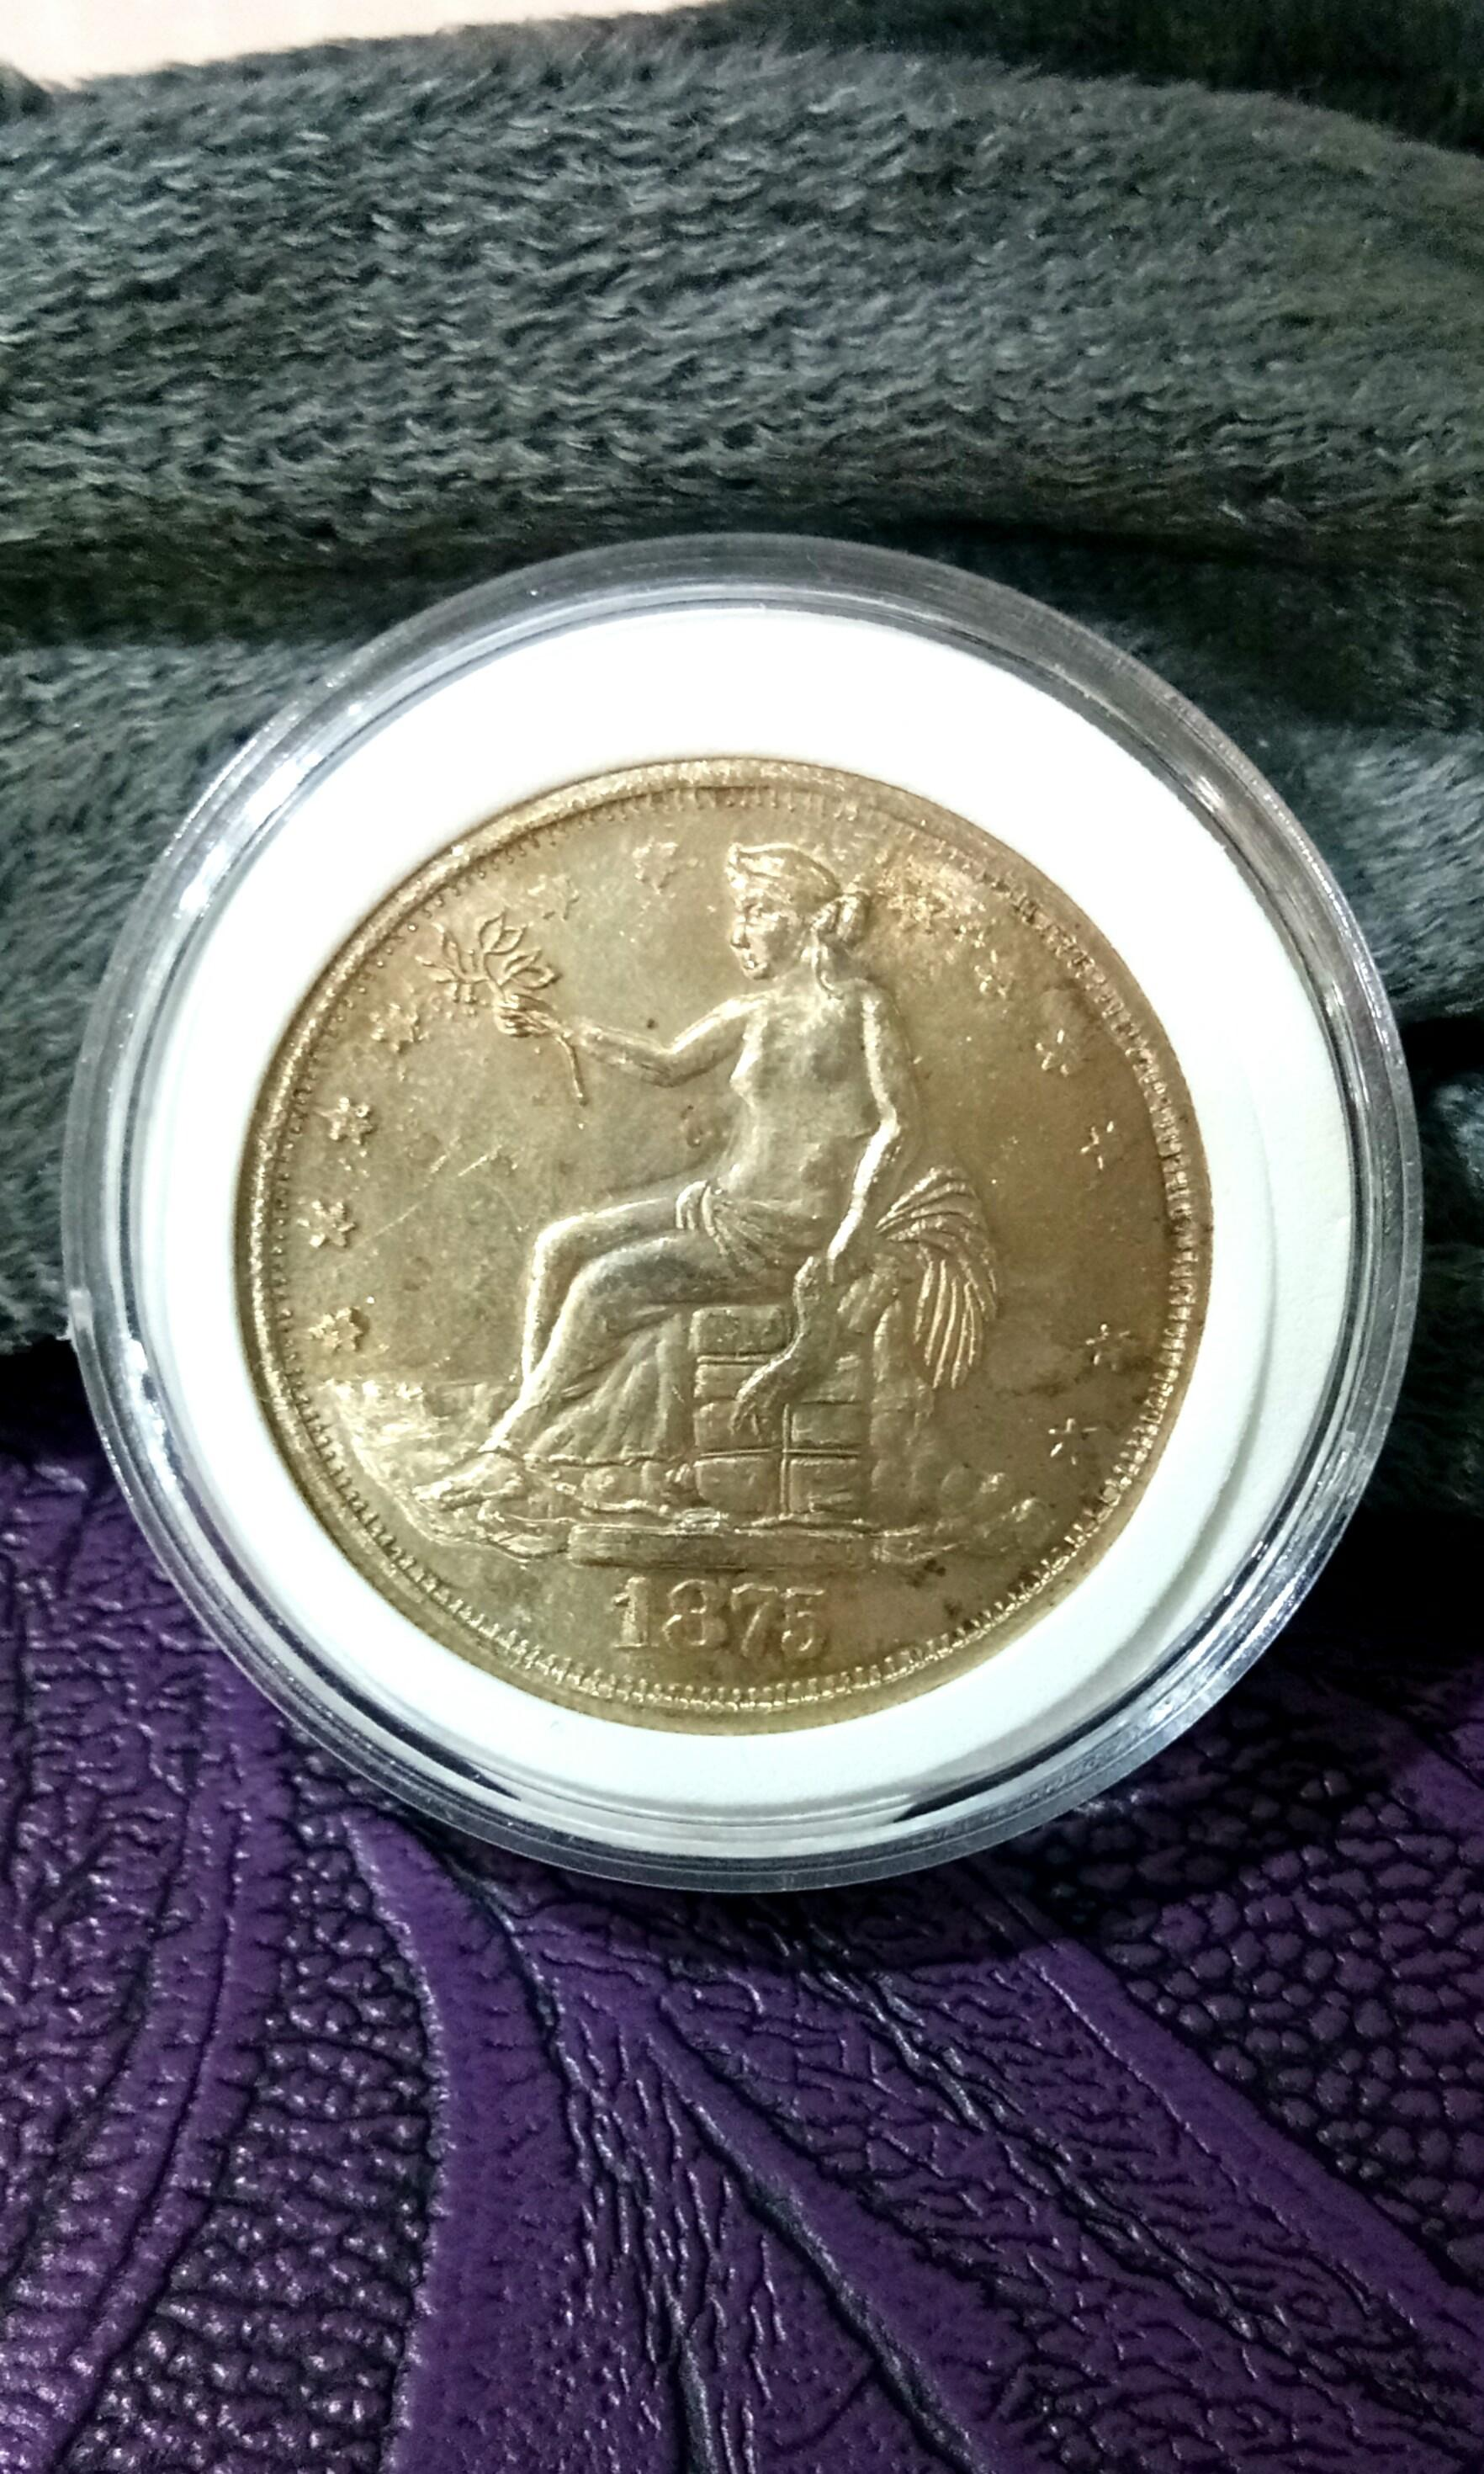 United States of America 1875 Trade Dollar ( This is a high value replica ) Wang Syilling USA